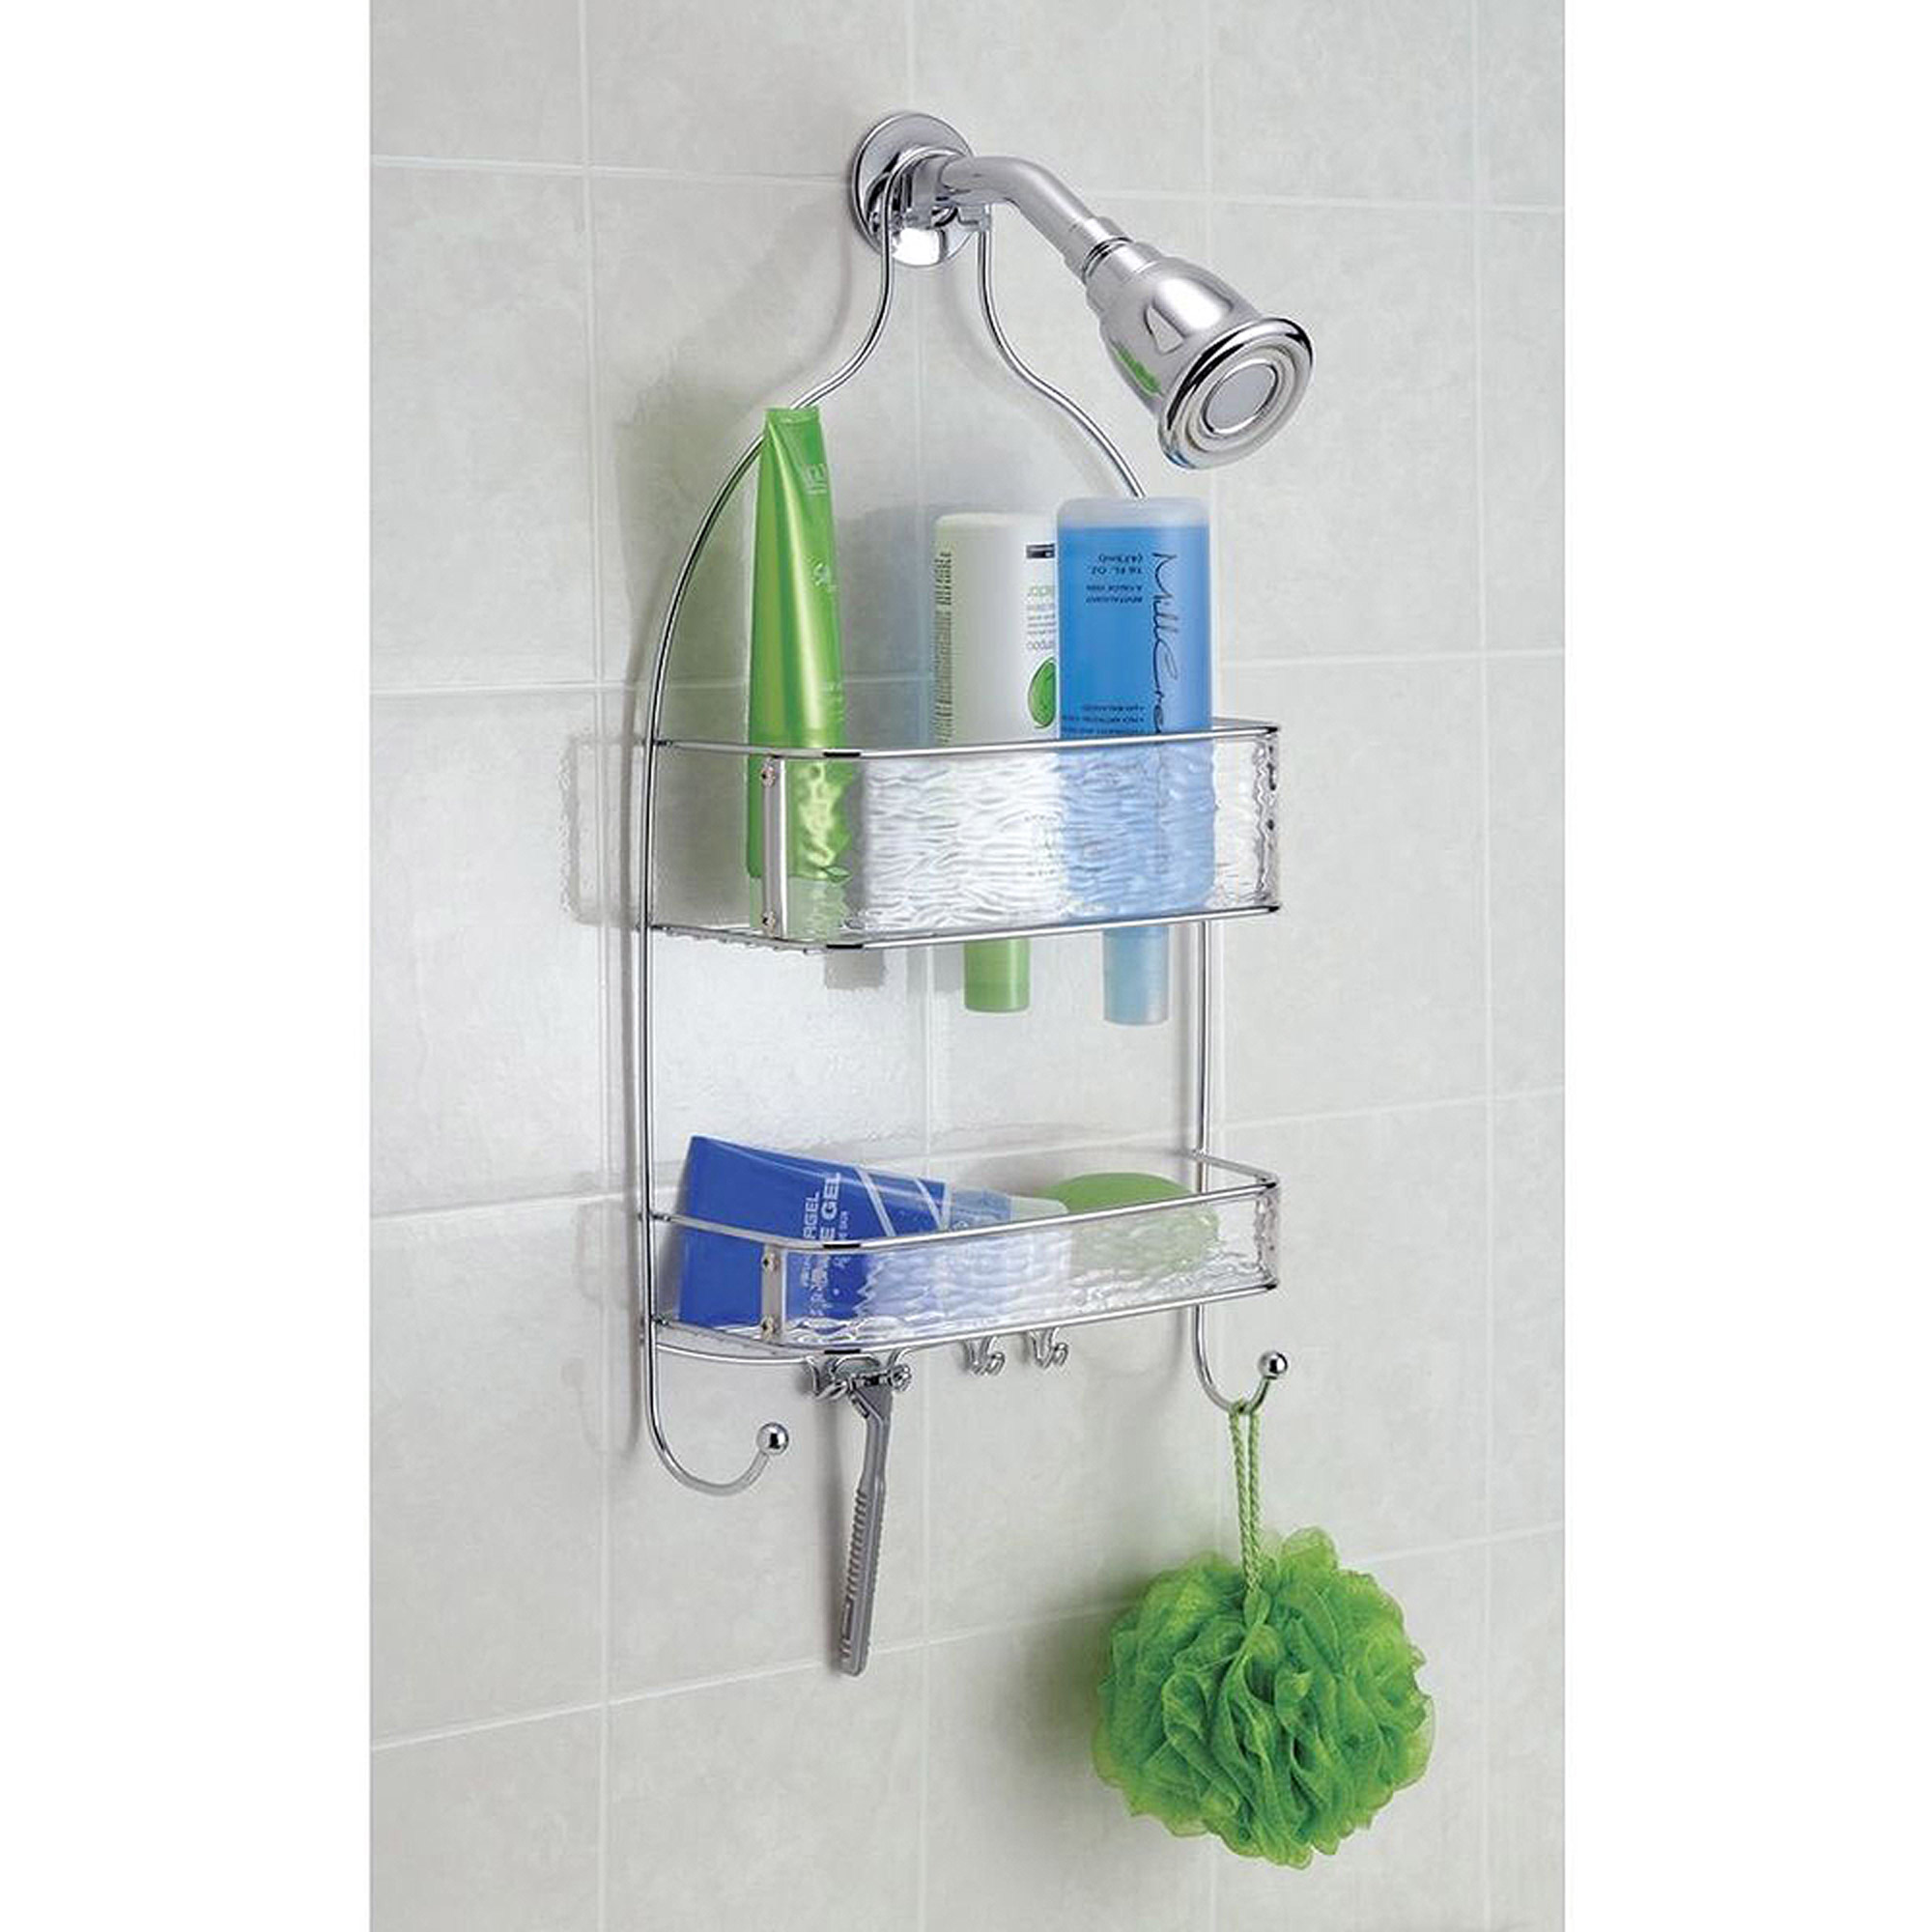 InterDesign Wavz Shower Caddy by INTERDESIGN